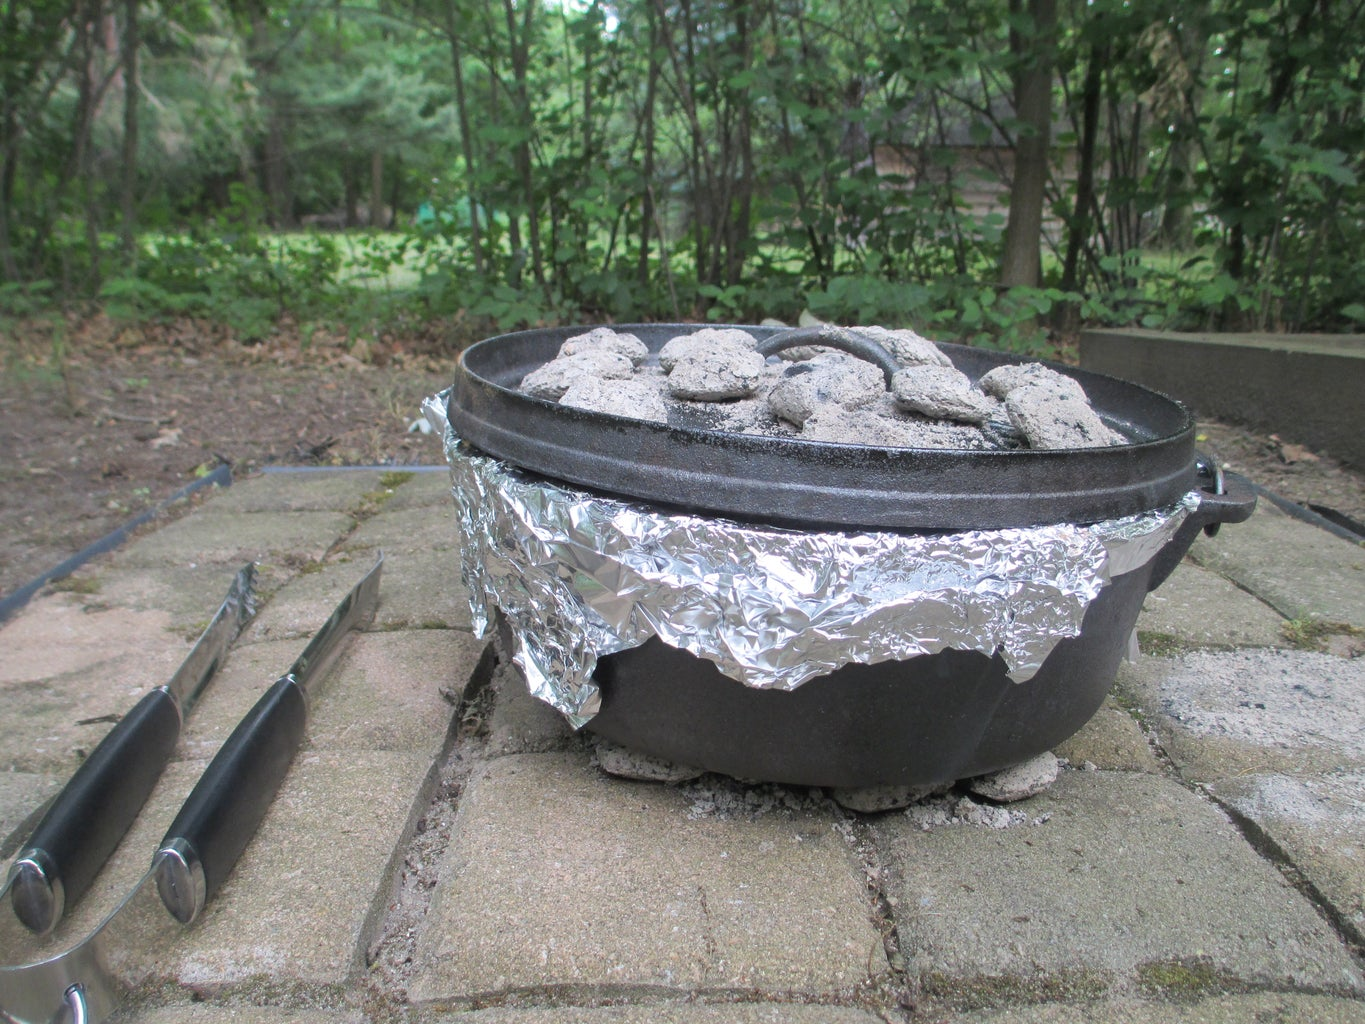 Add Dutch Oven to Fire